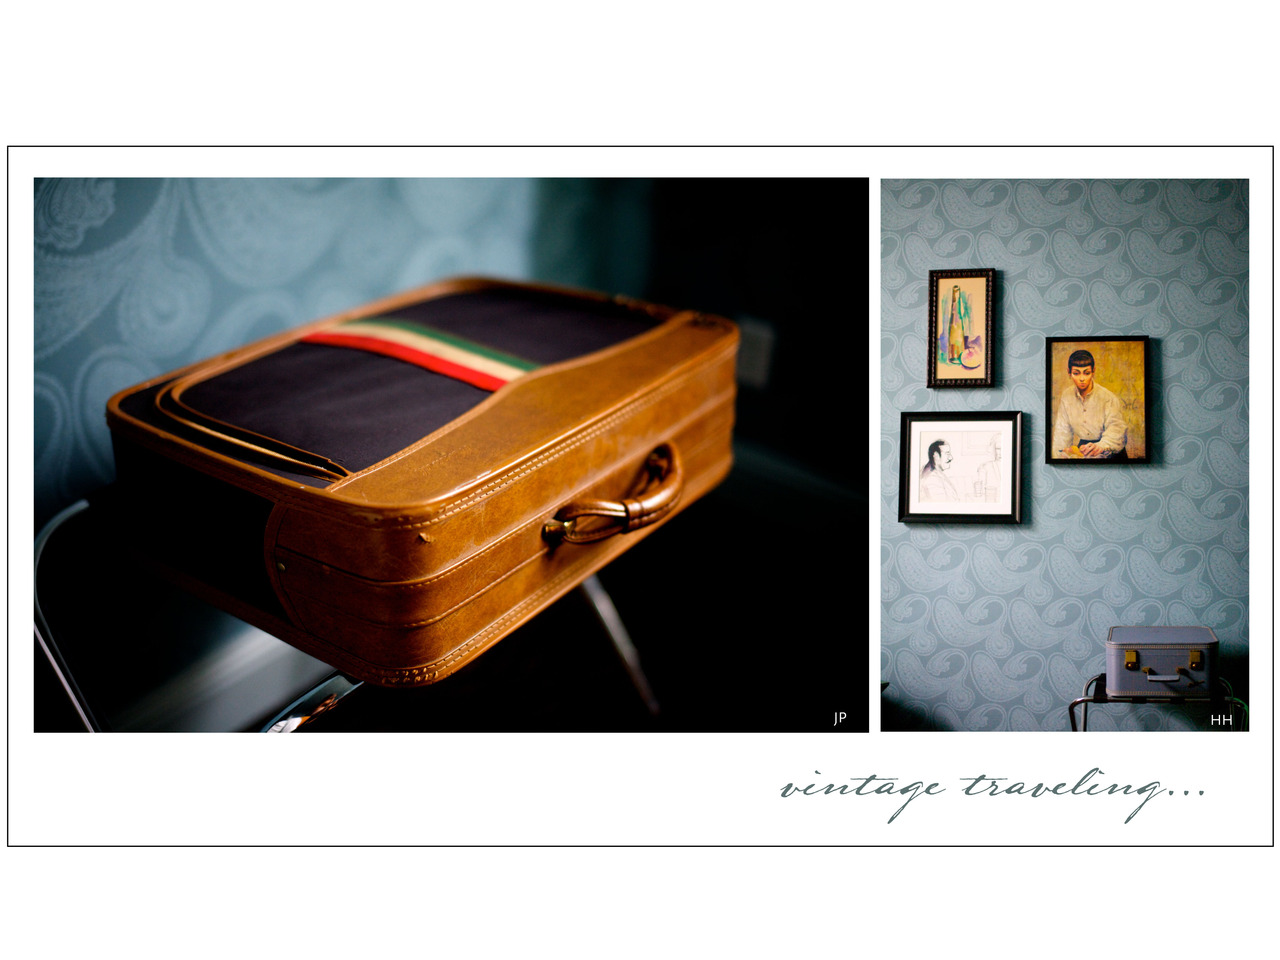 I love the photos of these suitcases.  Makes me want to book a bed and breakfast somewhere off the coast of Nantucket, not sure why that place comes to mind, never been there.  I thought you might enjoy this, I got this from your  Aunt Helena's blog .   Find yourself a nice suitcase and travel the world.  You cannot truly enjoy all of life's beauty or find all the answers to your questions sitting around at home.  Get the 'eff out of Dodge…   I had the rare opportunity to live in so many far off places.  My advice, do not limit your travels, get off the beaten path and you will be surprised at what you find.  I have visited some amazing places, from bustling cities to tiny little villages, where their idea of a bathroom was a hole in the ground.  In fact, I graduated high school in Del Rio Texas, that town looked like it was ripped right out of the movie Napoleon Dynamite.  My point is this, the contrast between how each population views the world is just as interesting as the places themselves.  Don't fall into the trap that the US is the center of the world.  See the world and be humbled.   So, I hope you make time to travel as you get older.  Or maybe attend school studying abroad.  In fact, go live somewhere outside of home base… just make sure you limit that time to a year, we don't want you to be away for too long.   ps  Semester at Sea doesn't count, I know what happens on those ships… you're not going.